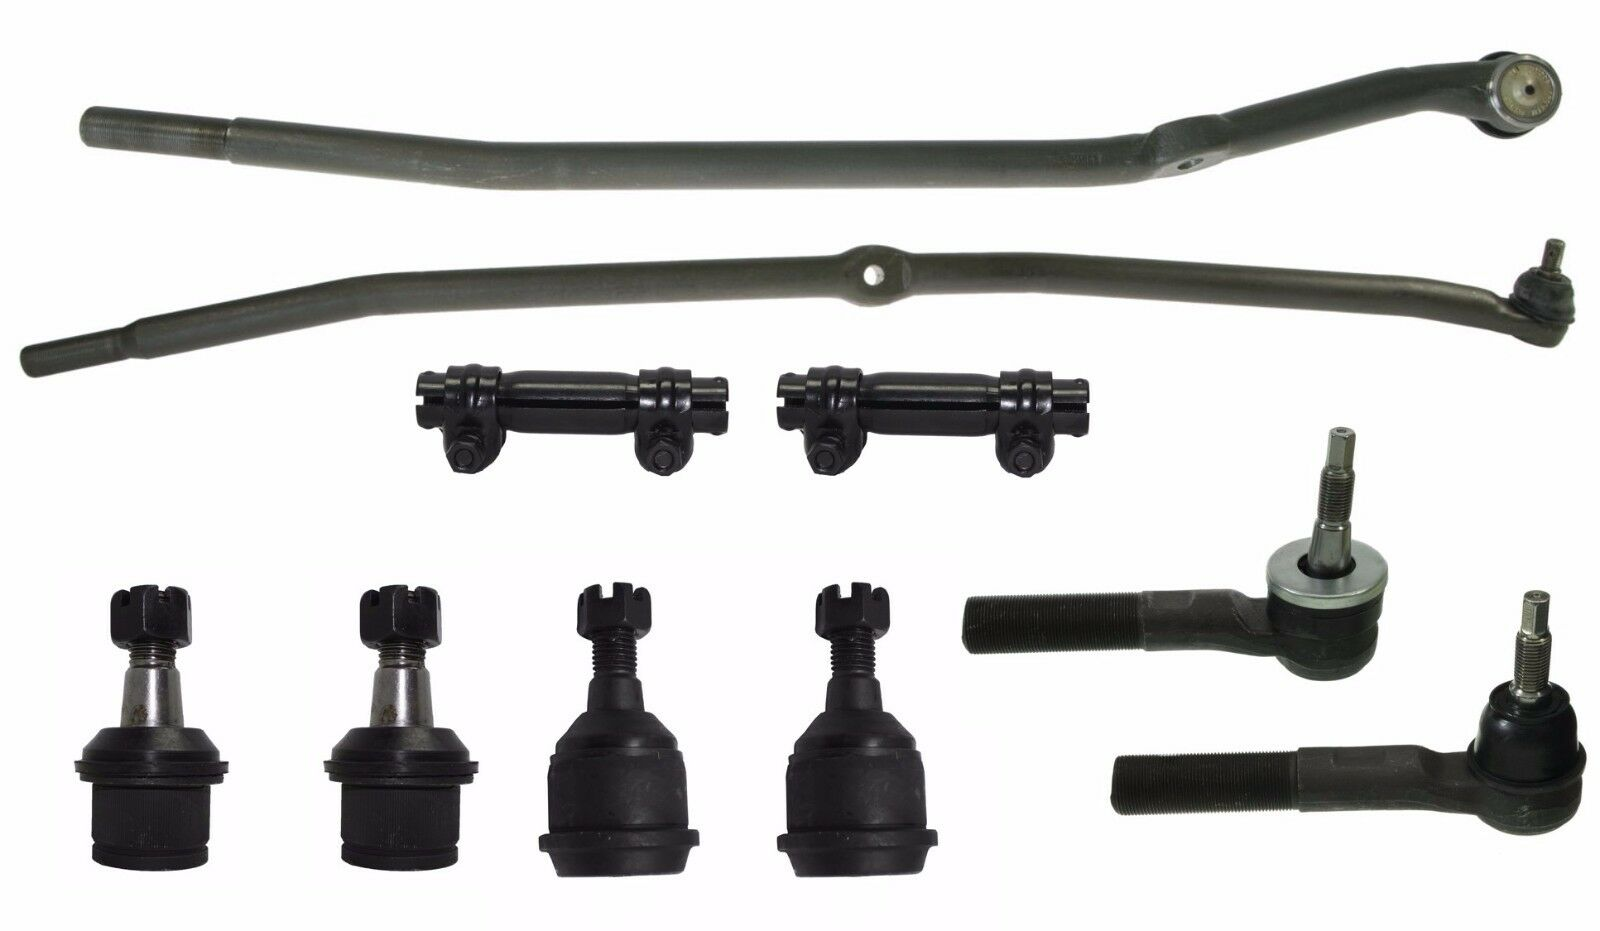 Ball Joint Tie Rod Drag Link Dodge RAM 3500 2500 03-07 4x4 (LATEST DESIGN)